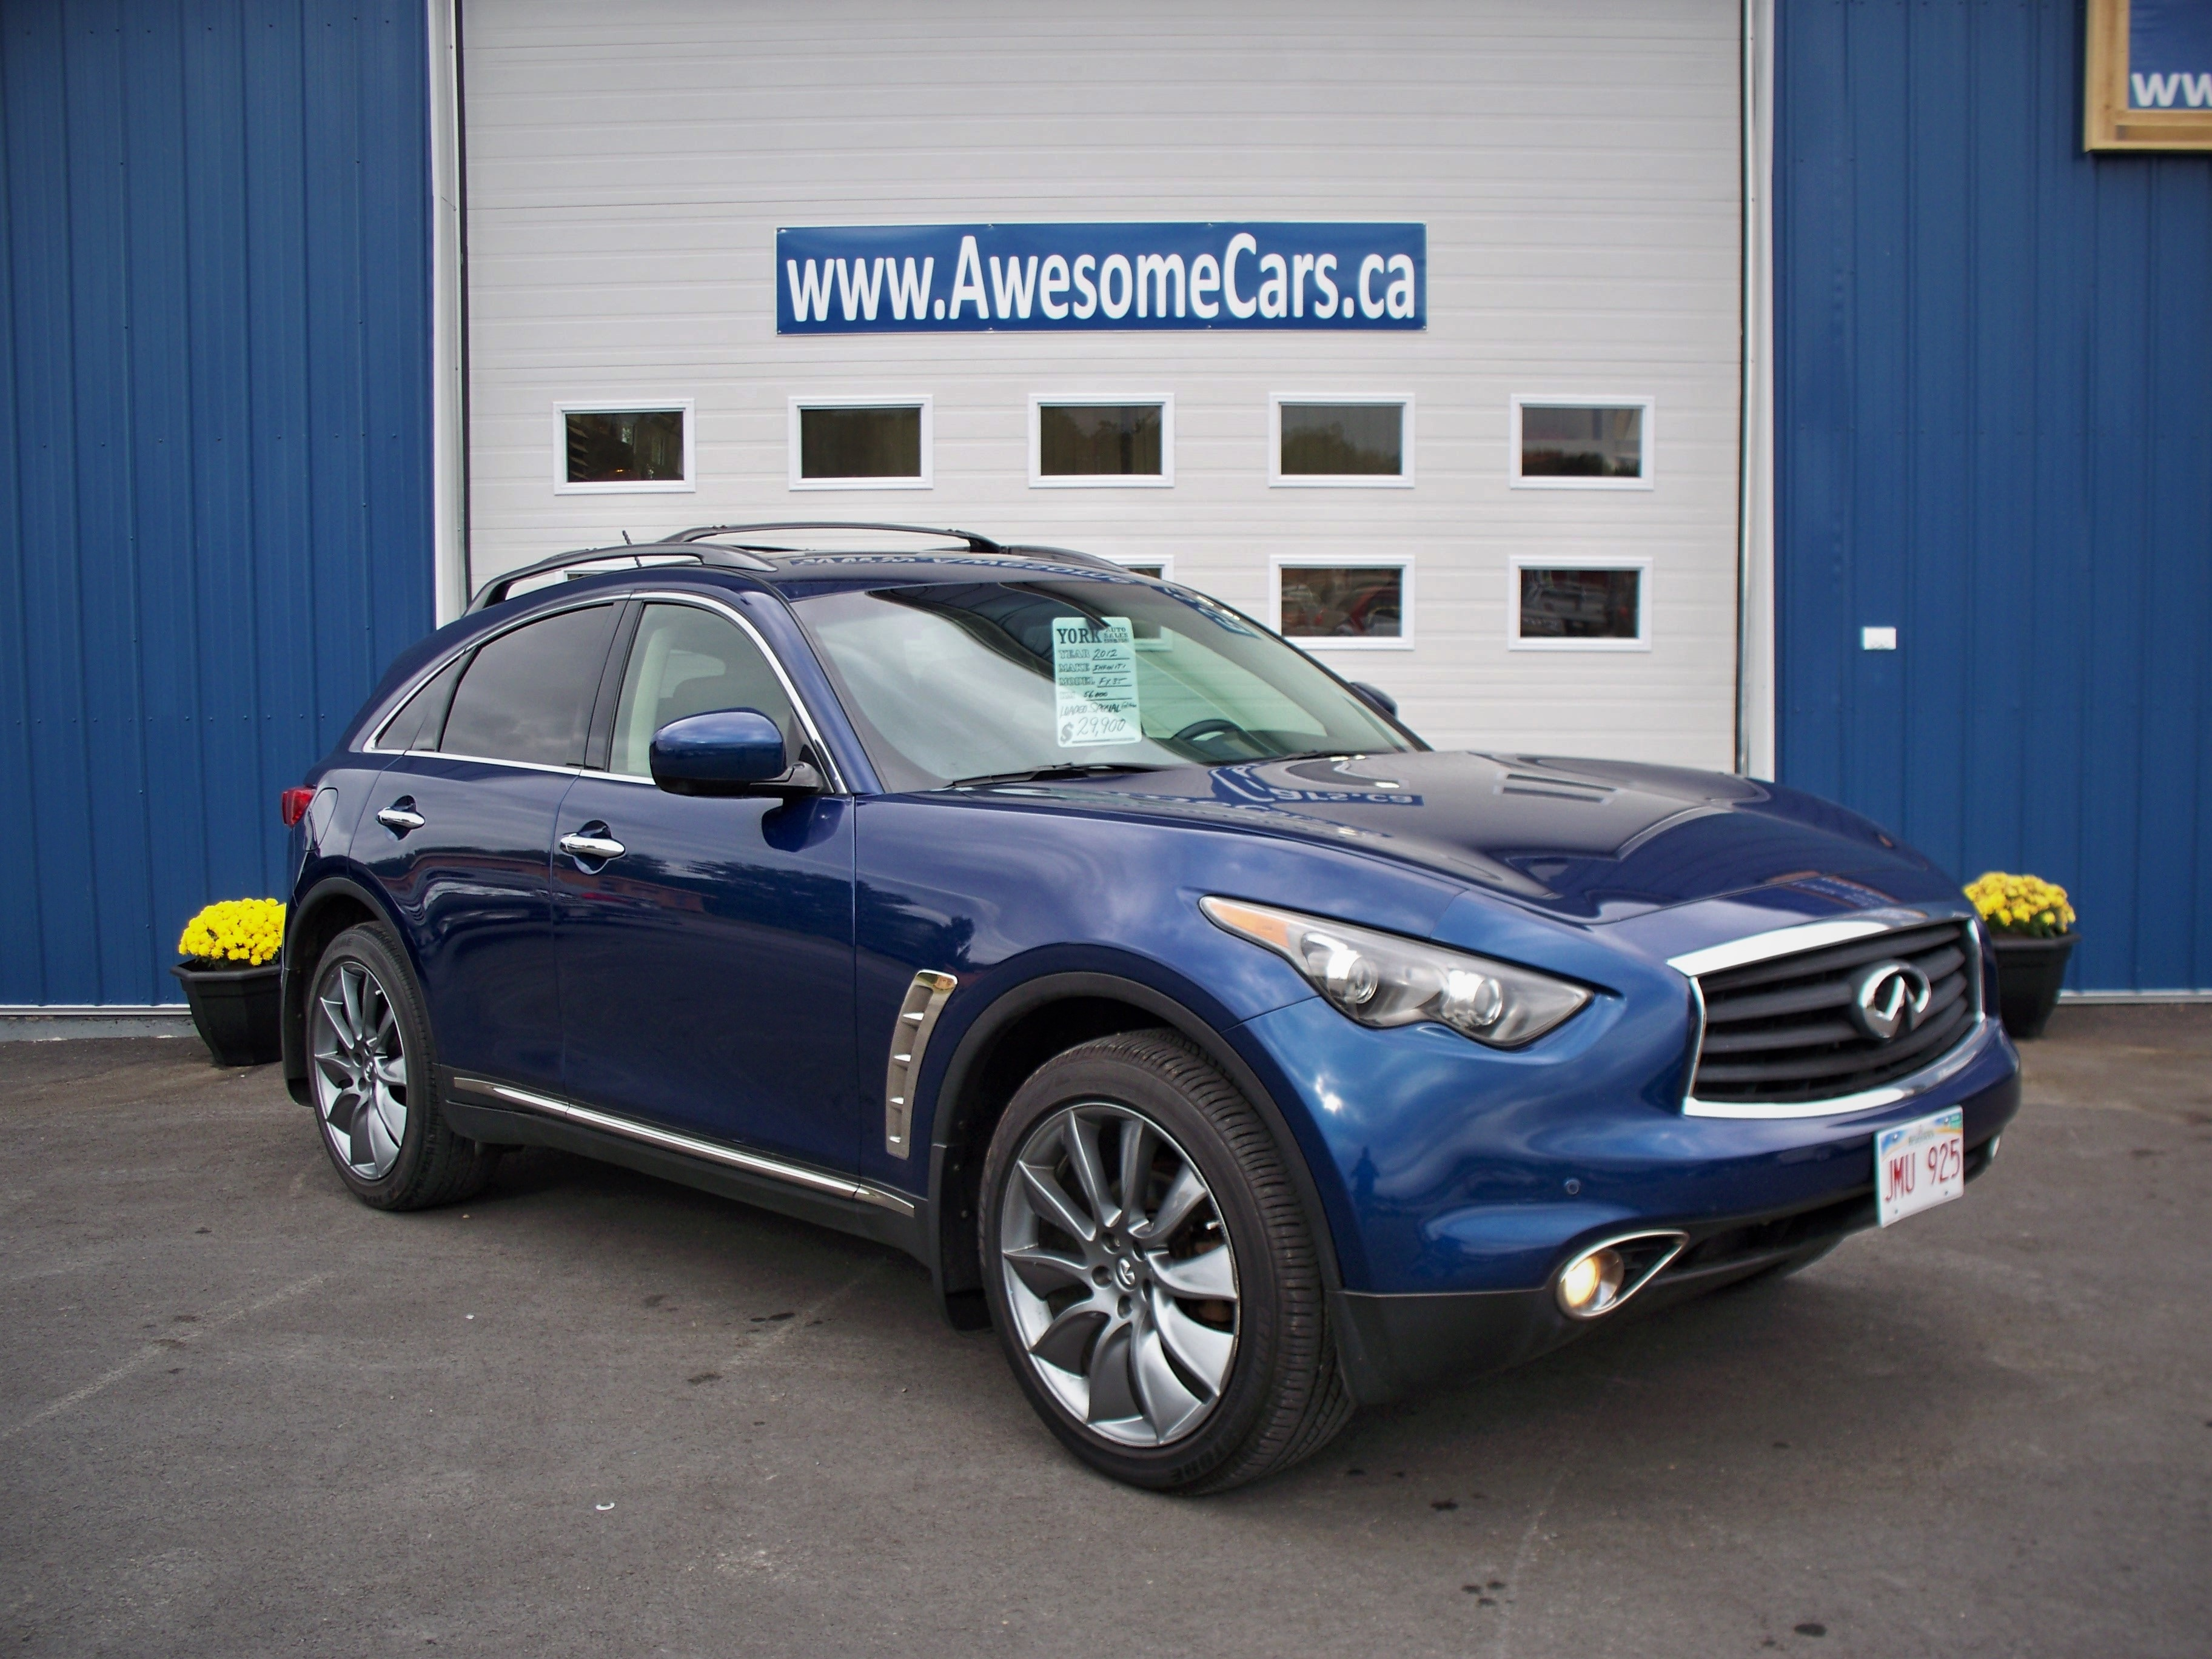 2012 INFINITI Fx35 Limited Edition (A7) (Limited Production) SUV